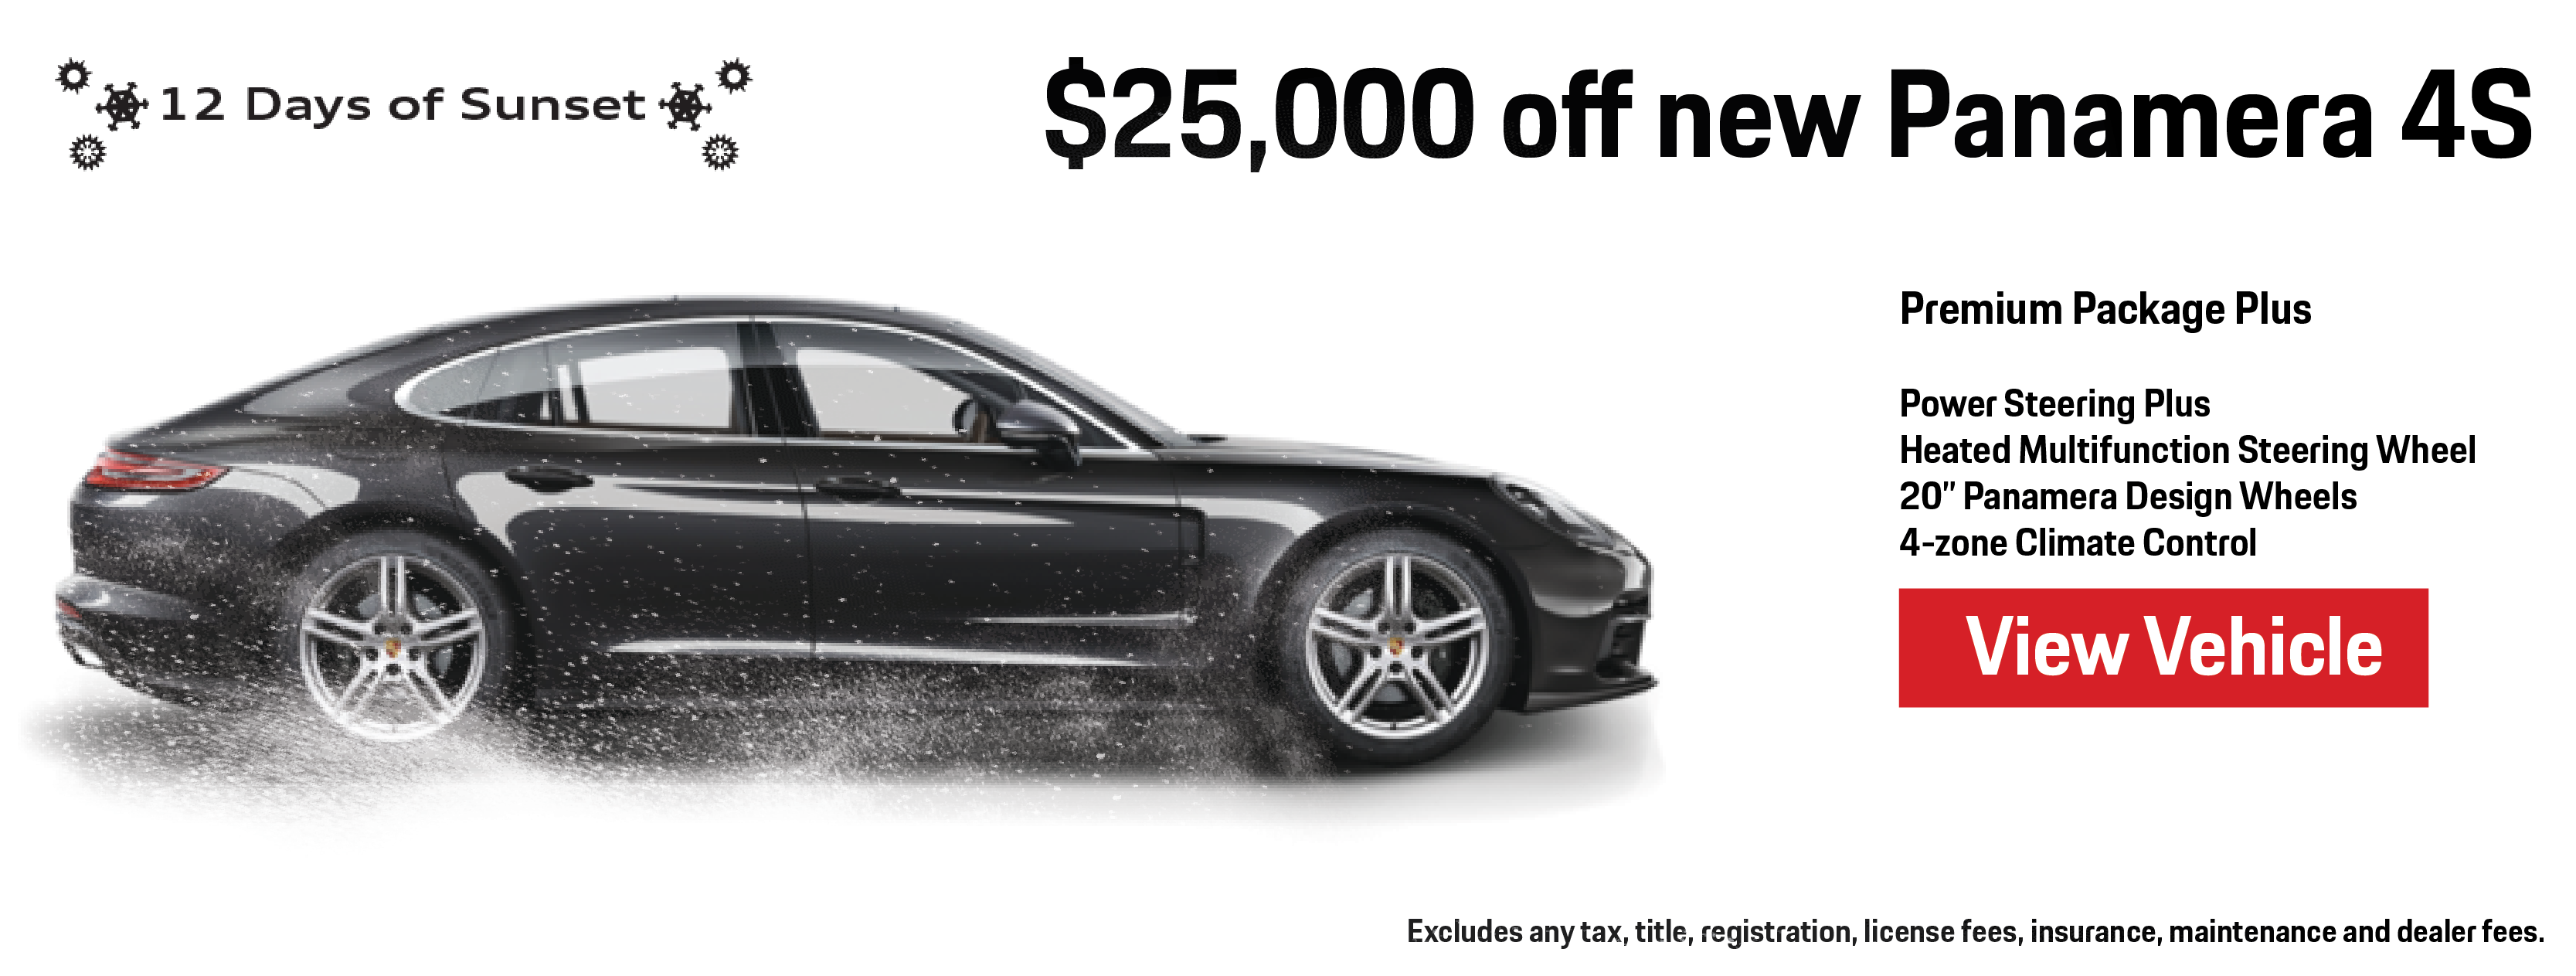 12 Days of Sunset   Day 1   Save $25,000 on new Panamera 4S   Learn More